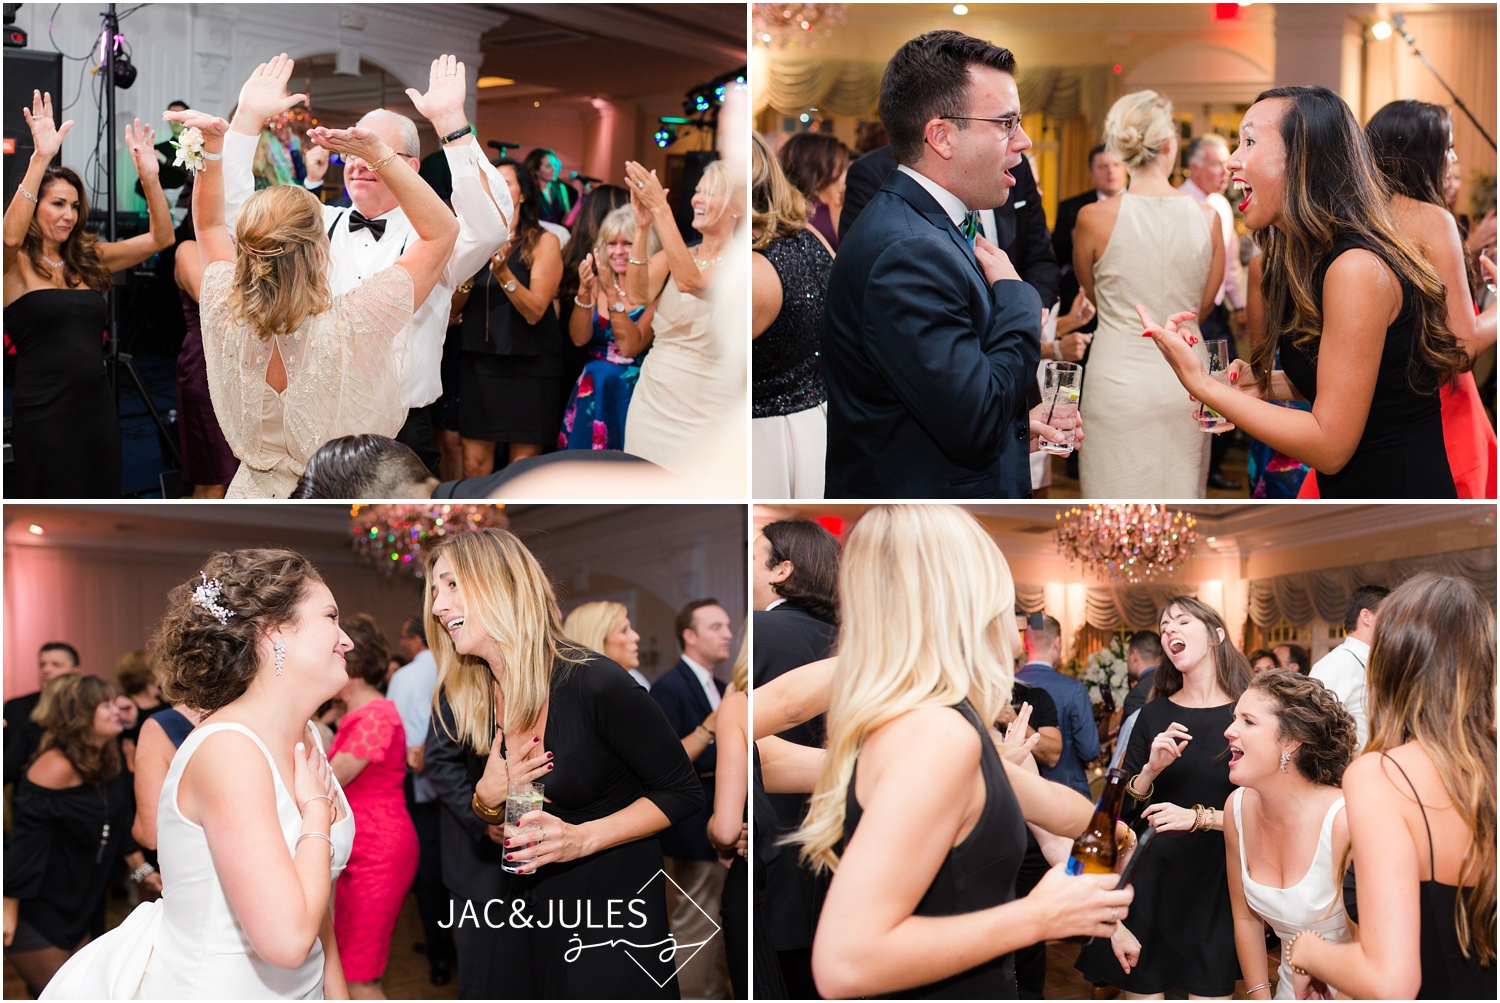 wedding reception at eagle oaks golf and country club in wall, nj.